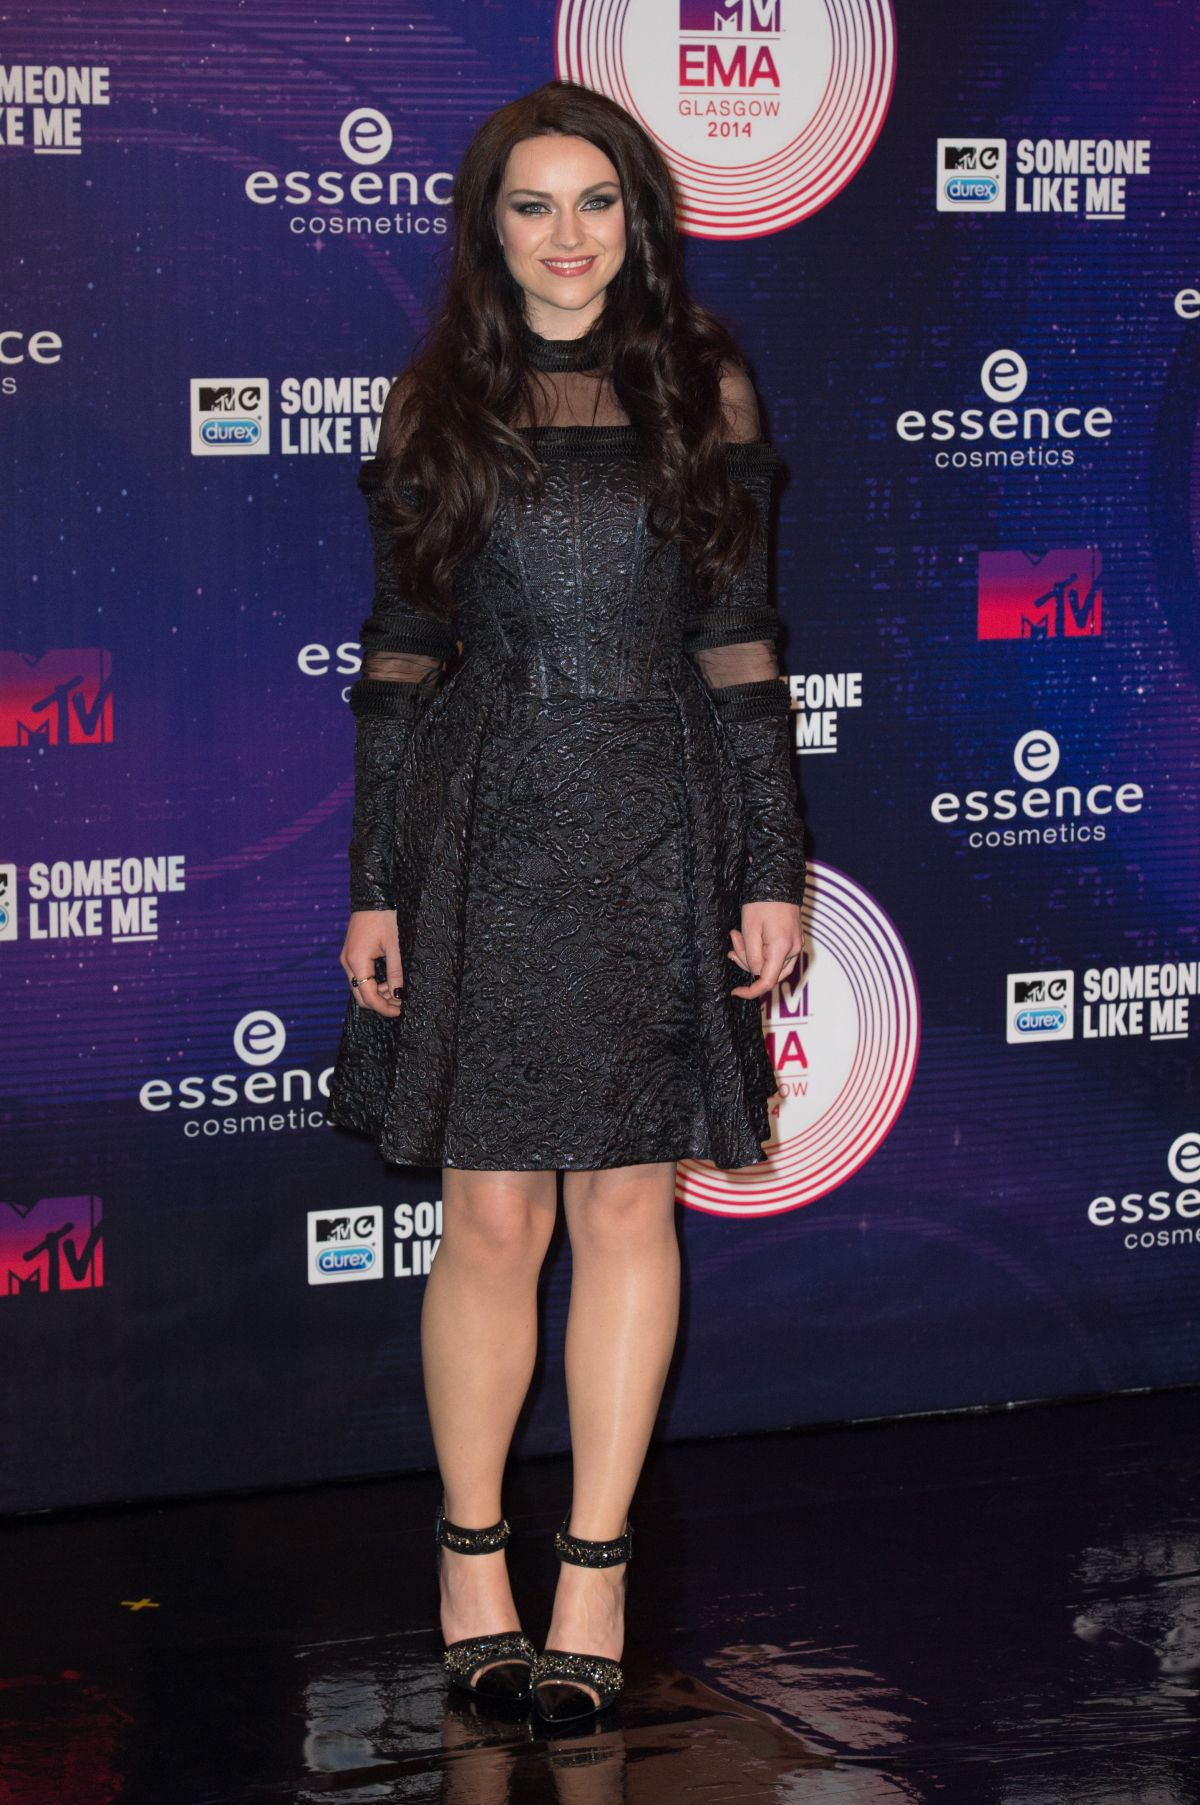 AMY MACDONALD at MTV Europe Music Awards 2014 in Glasgow